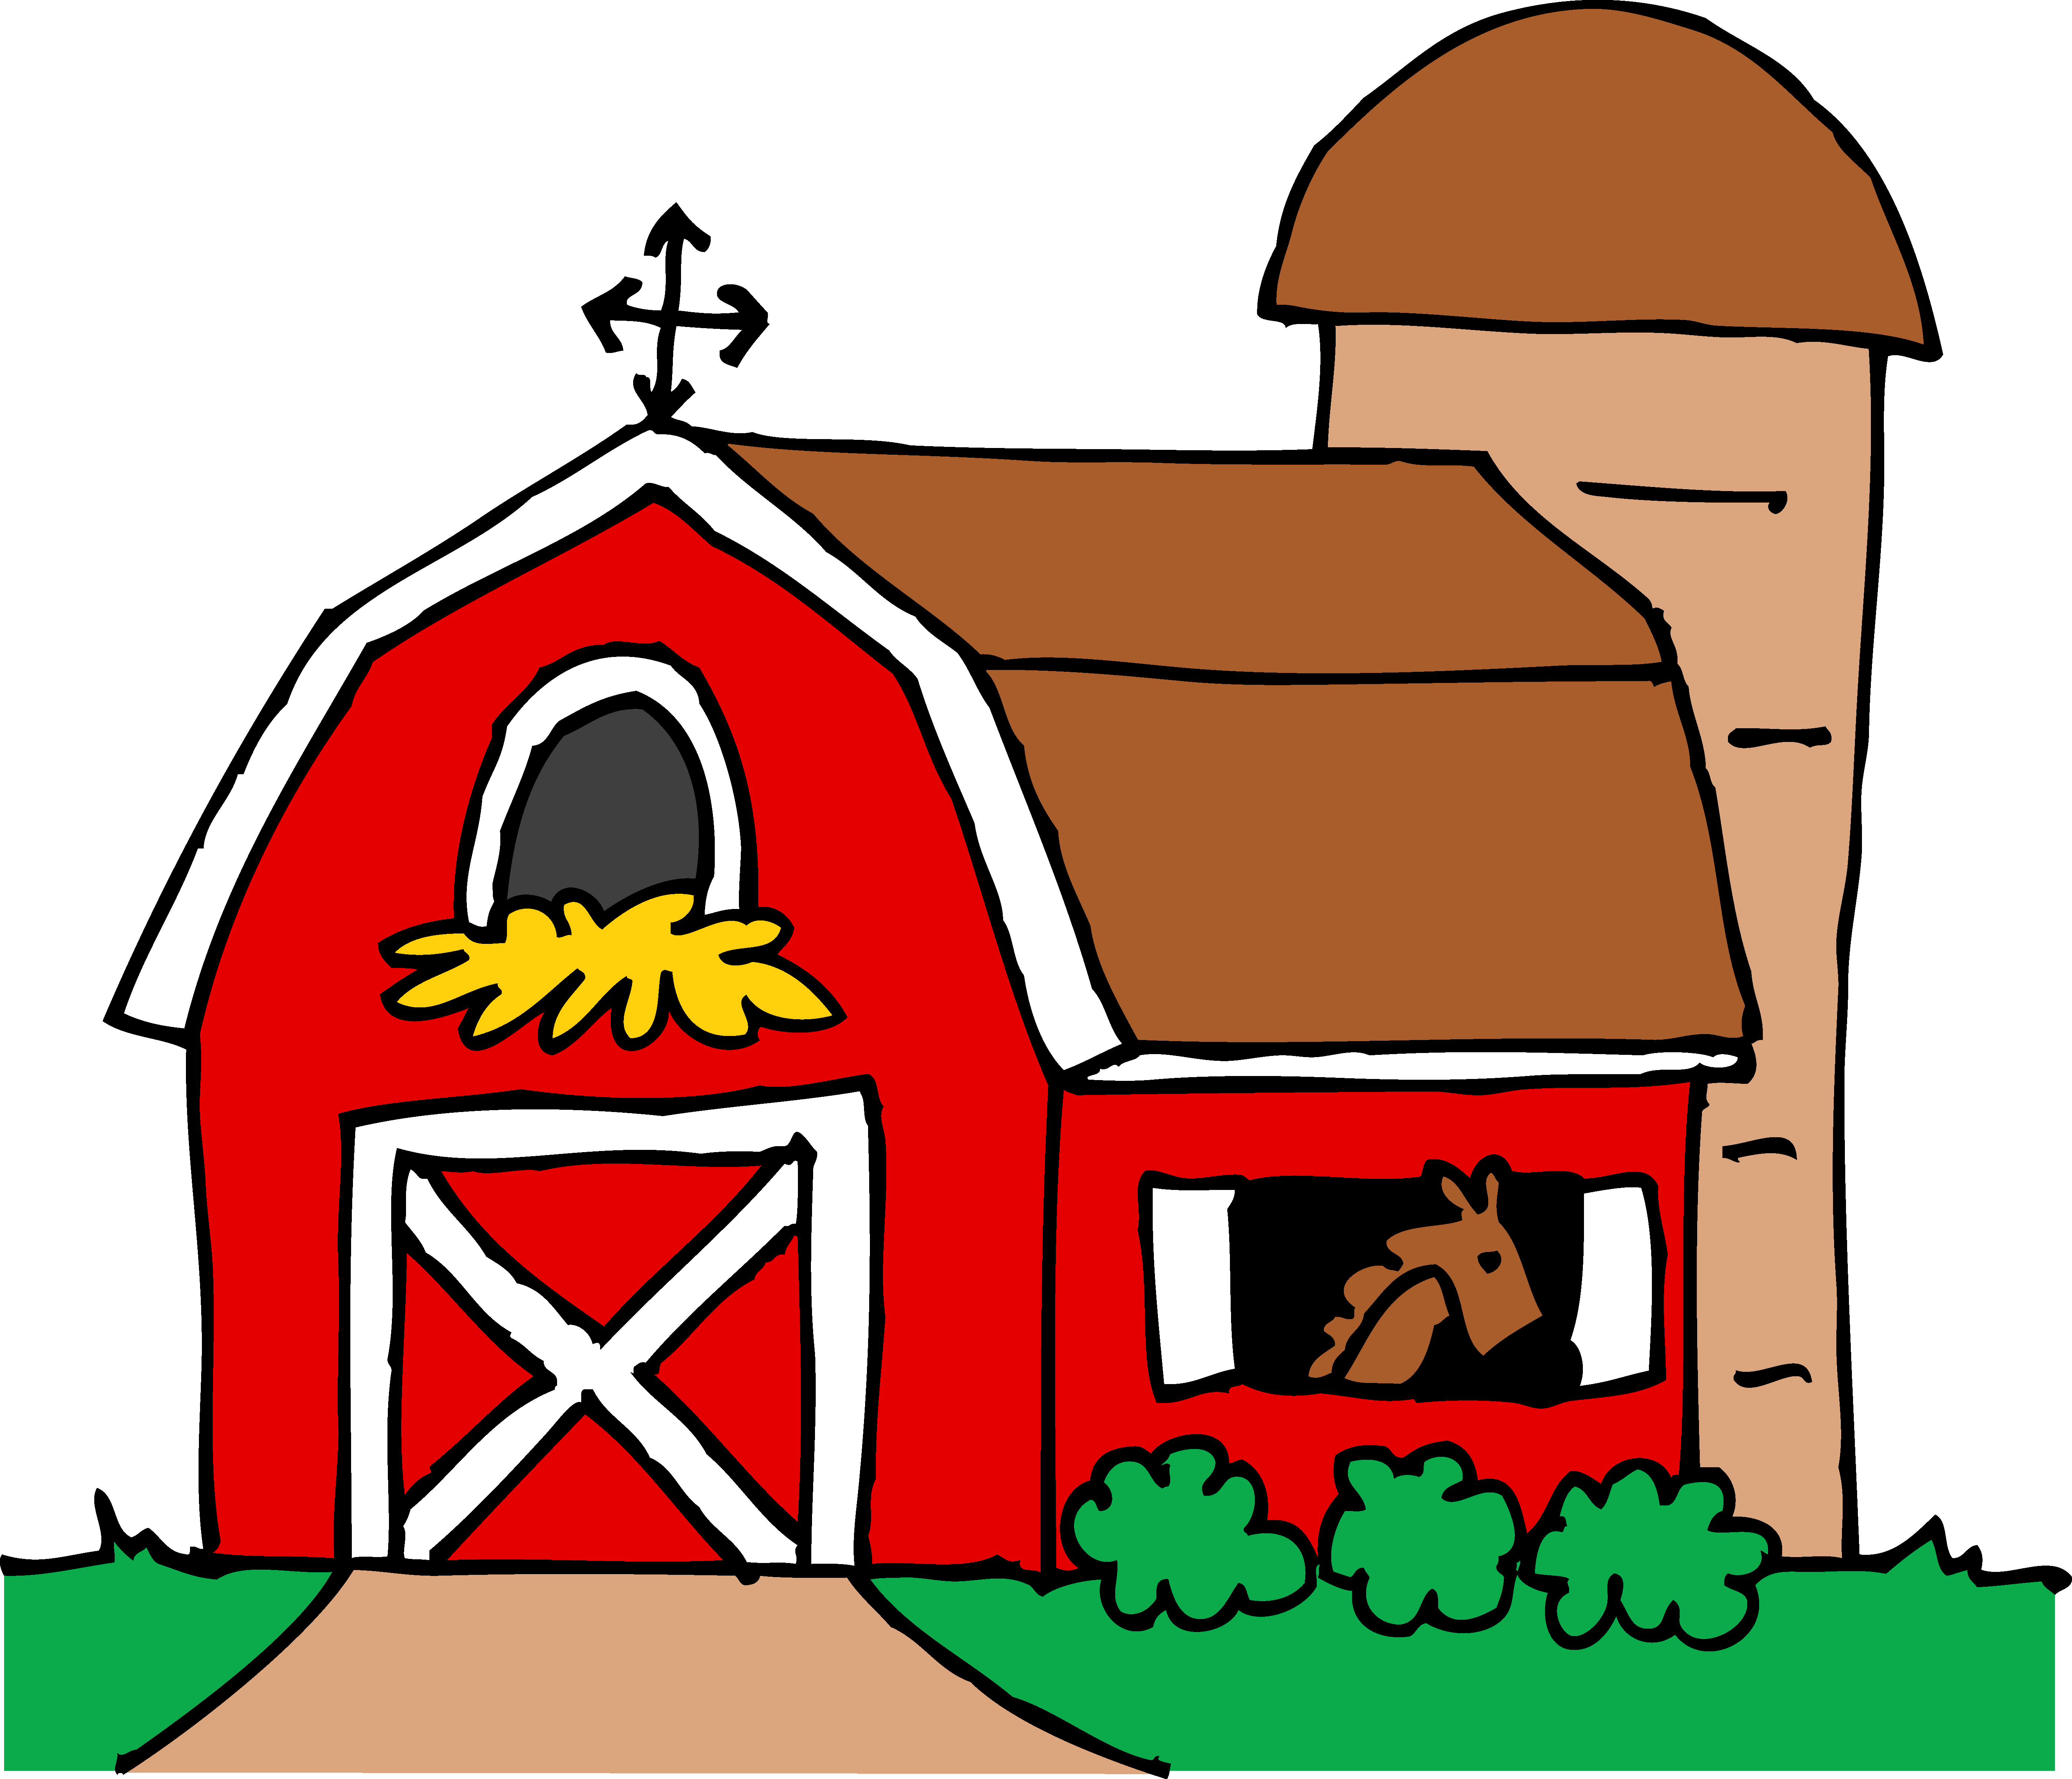 Free Barn Clipart Png, Download Free Clip Art, Free Clip Art.